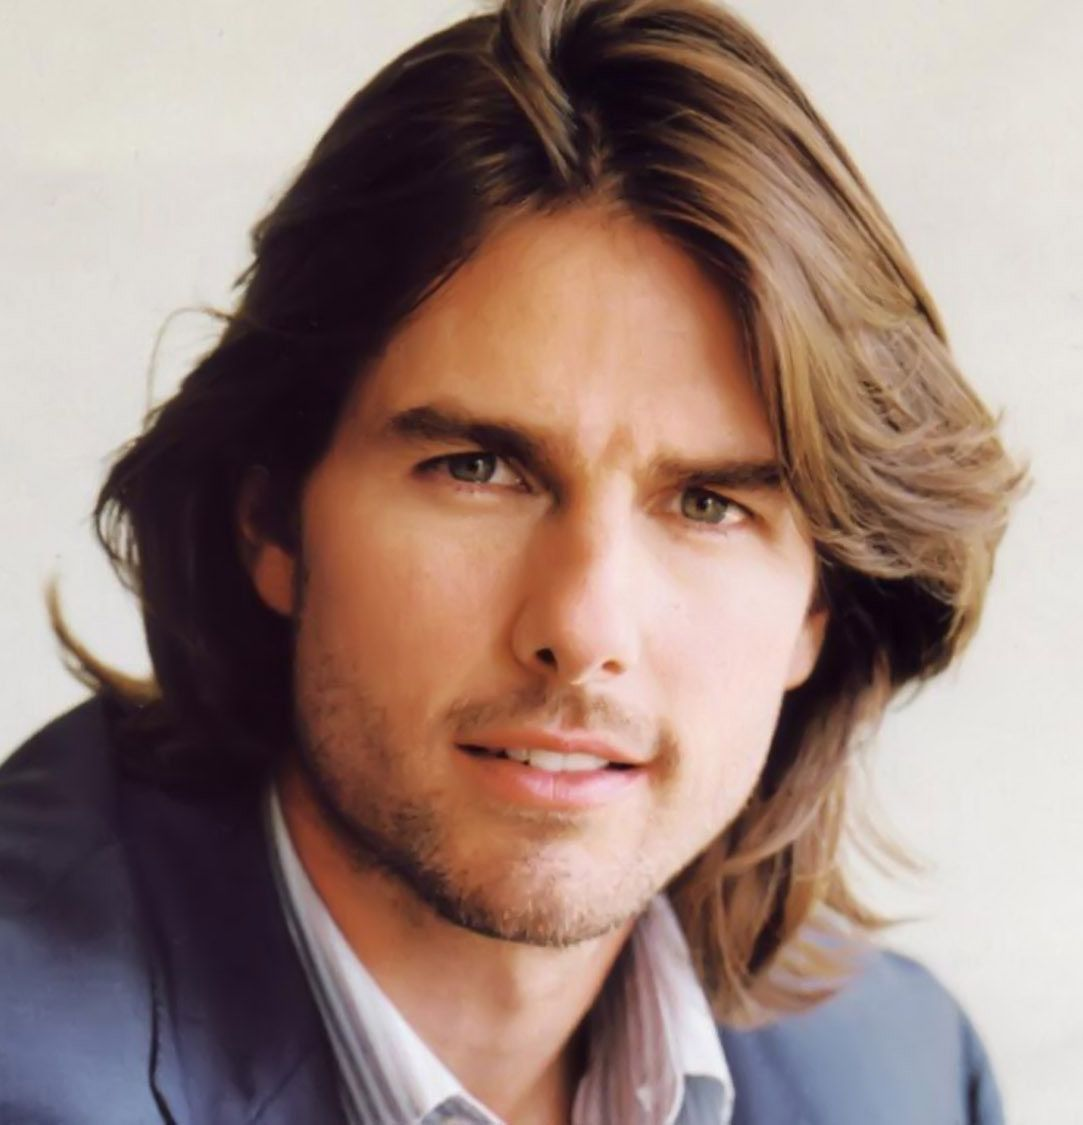 Tom Cruise Long Hairstyle Cabelo Longo Cabelo Forte Tom Cruise